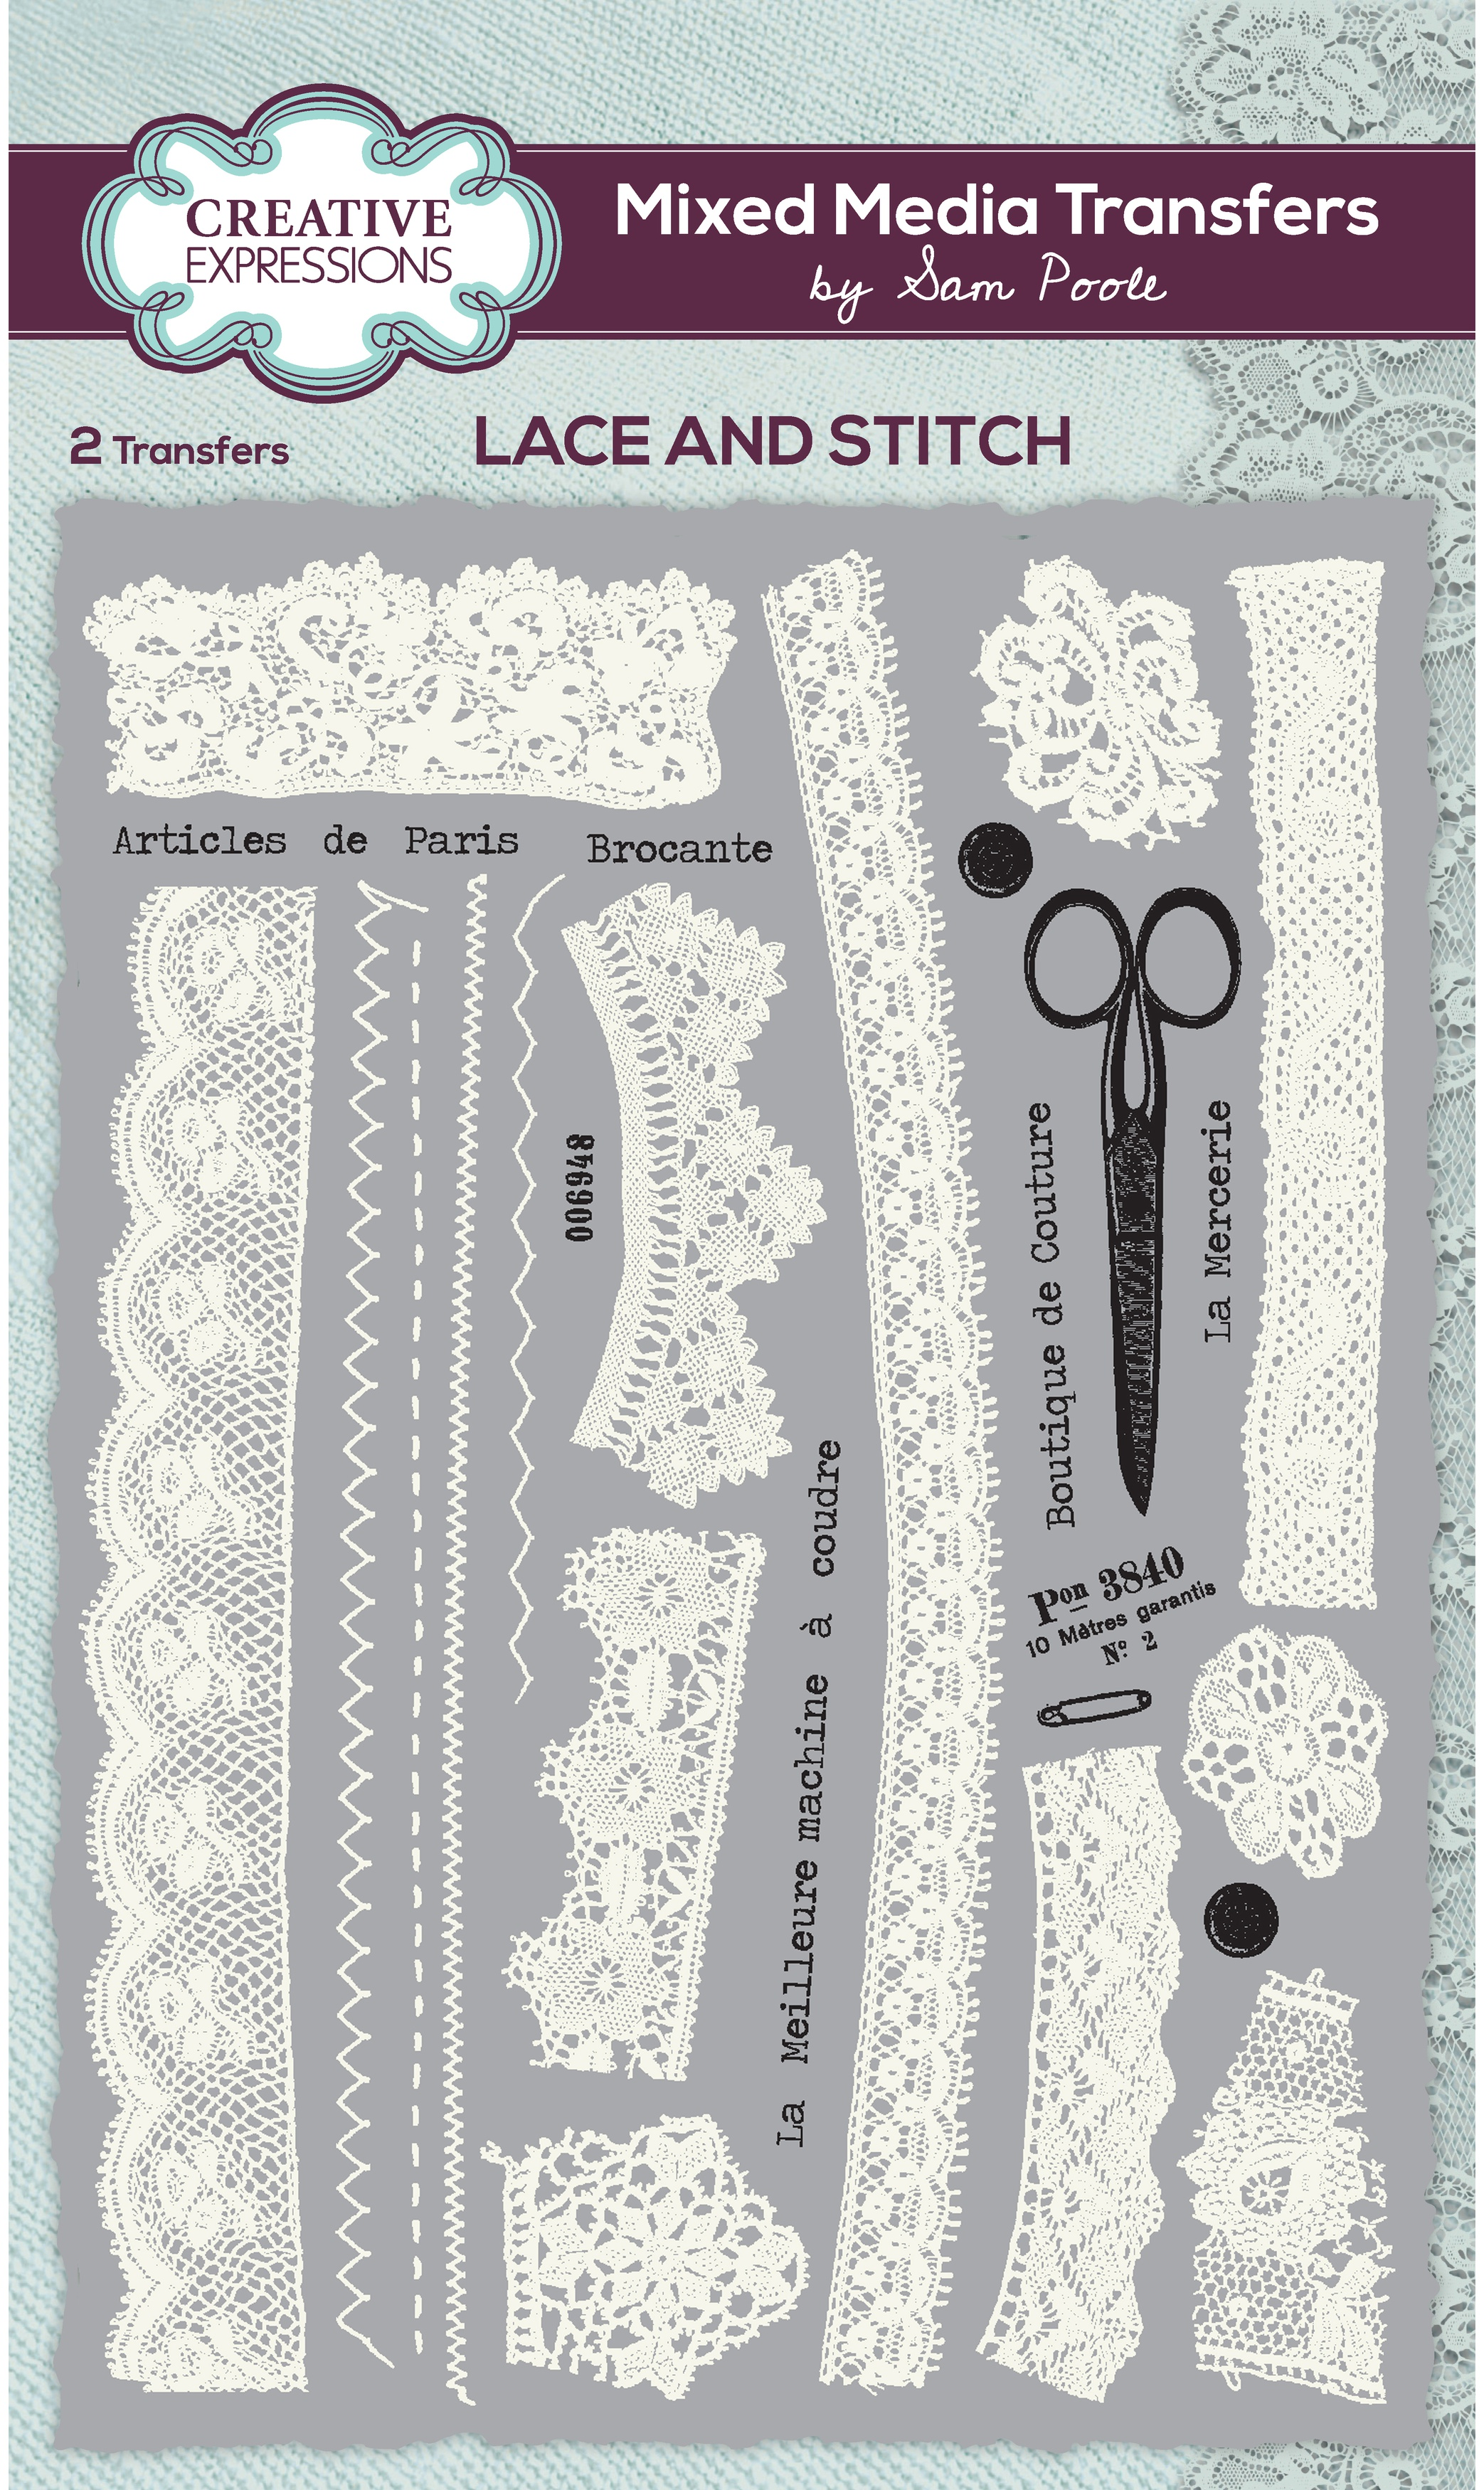 Creative Expressions Mixed Media Transfers By Sam Poole-Lace & Stitch